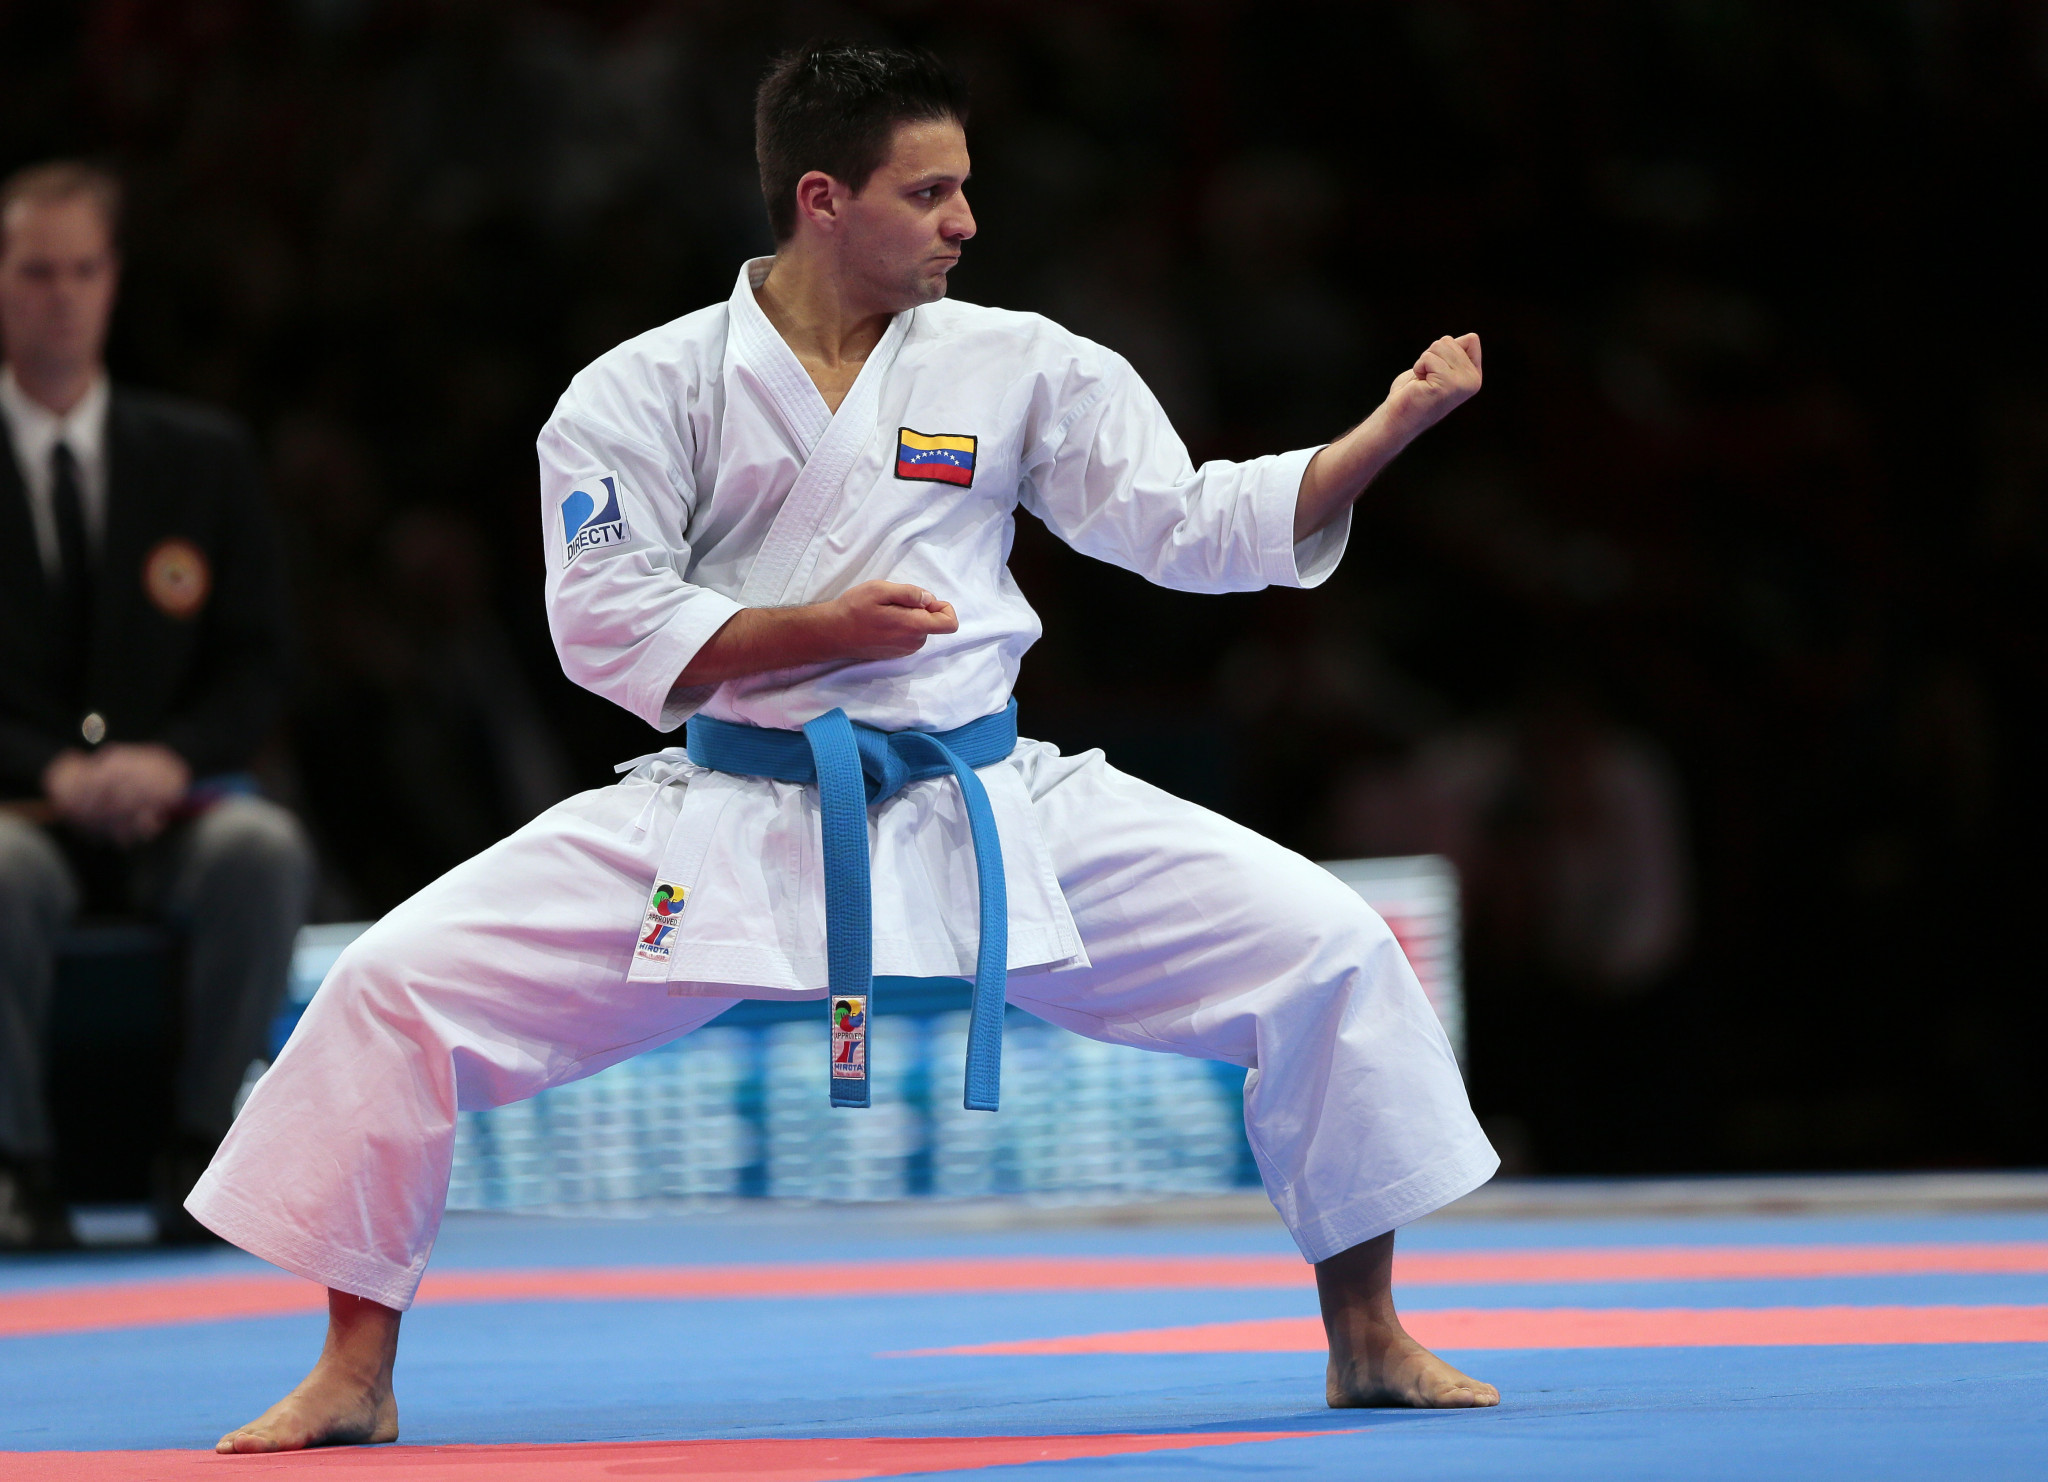 Antonio Díaz has won world titles for Venezuela in karate ©Getty Images